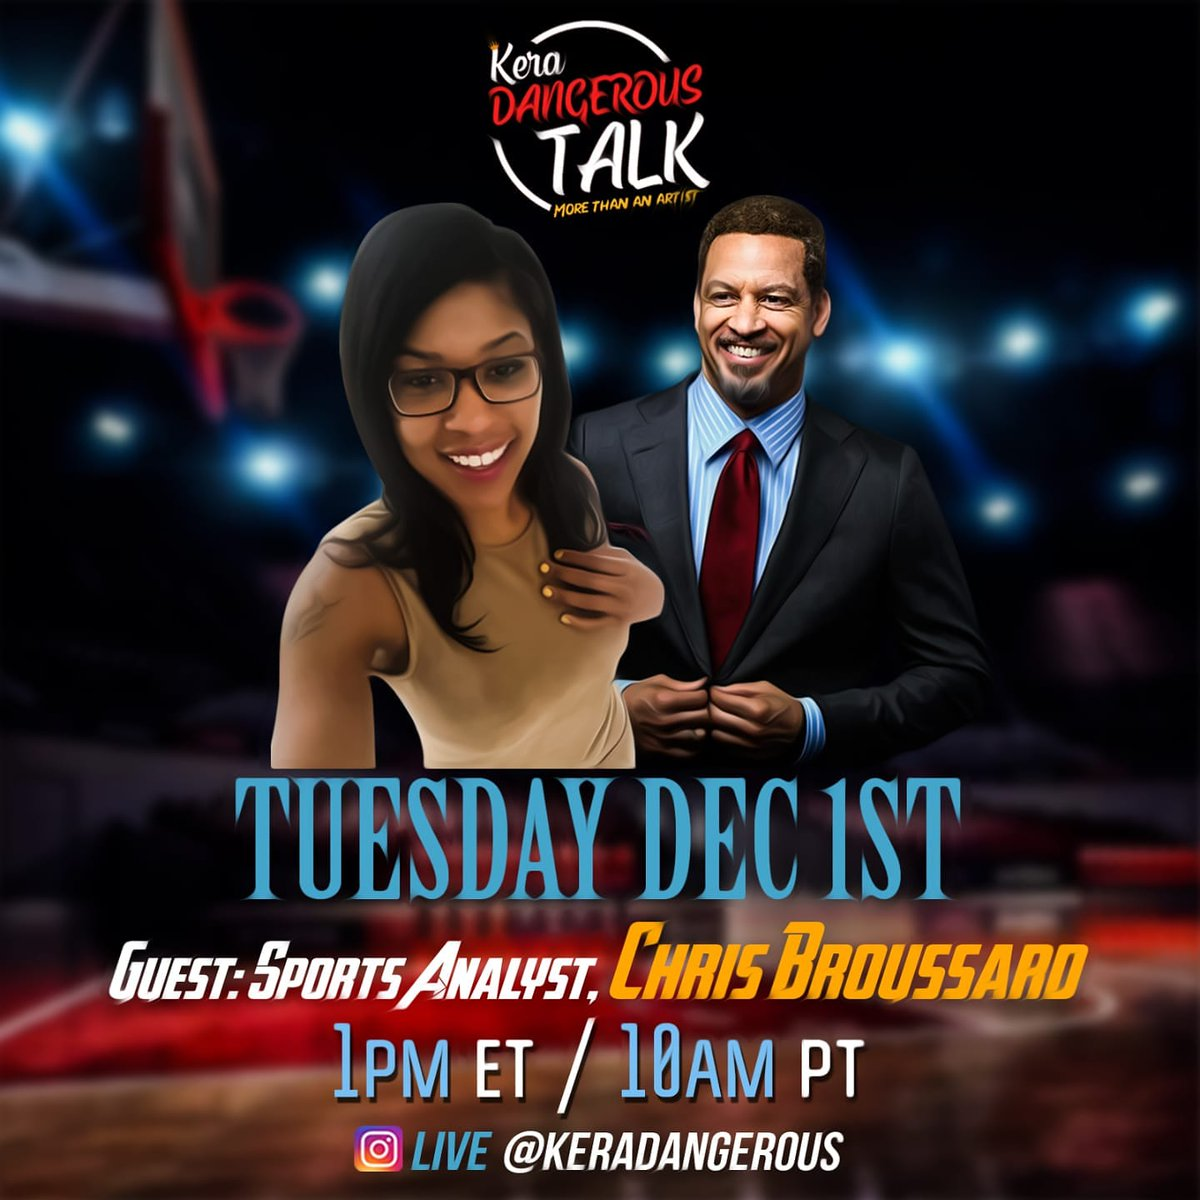 Tomorrow afternoon I'm going IG live with @Chris_Broussard  #sports #PodcastRecommendations #keradangeroustalk  #podcastlife #podcastersofinstagram #podcastandchill https://t.co/GOp2JWyv9L